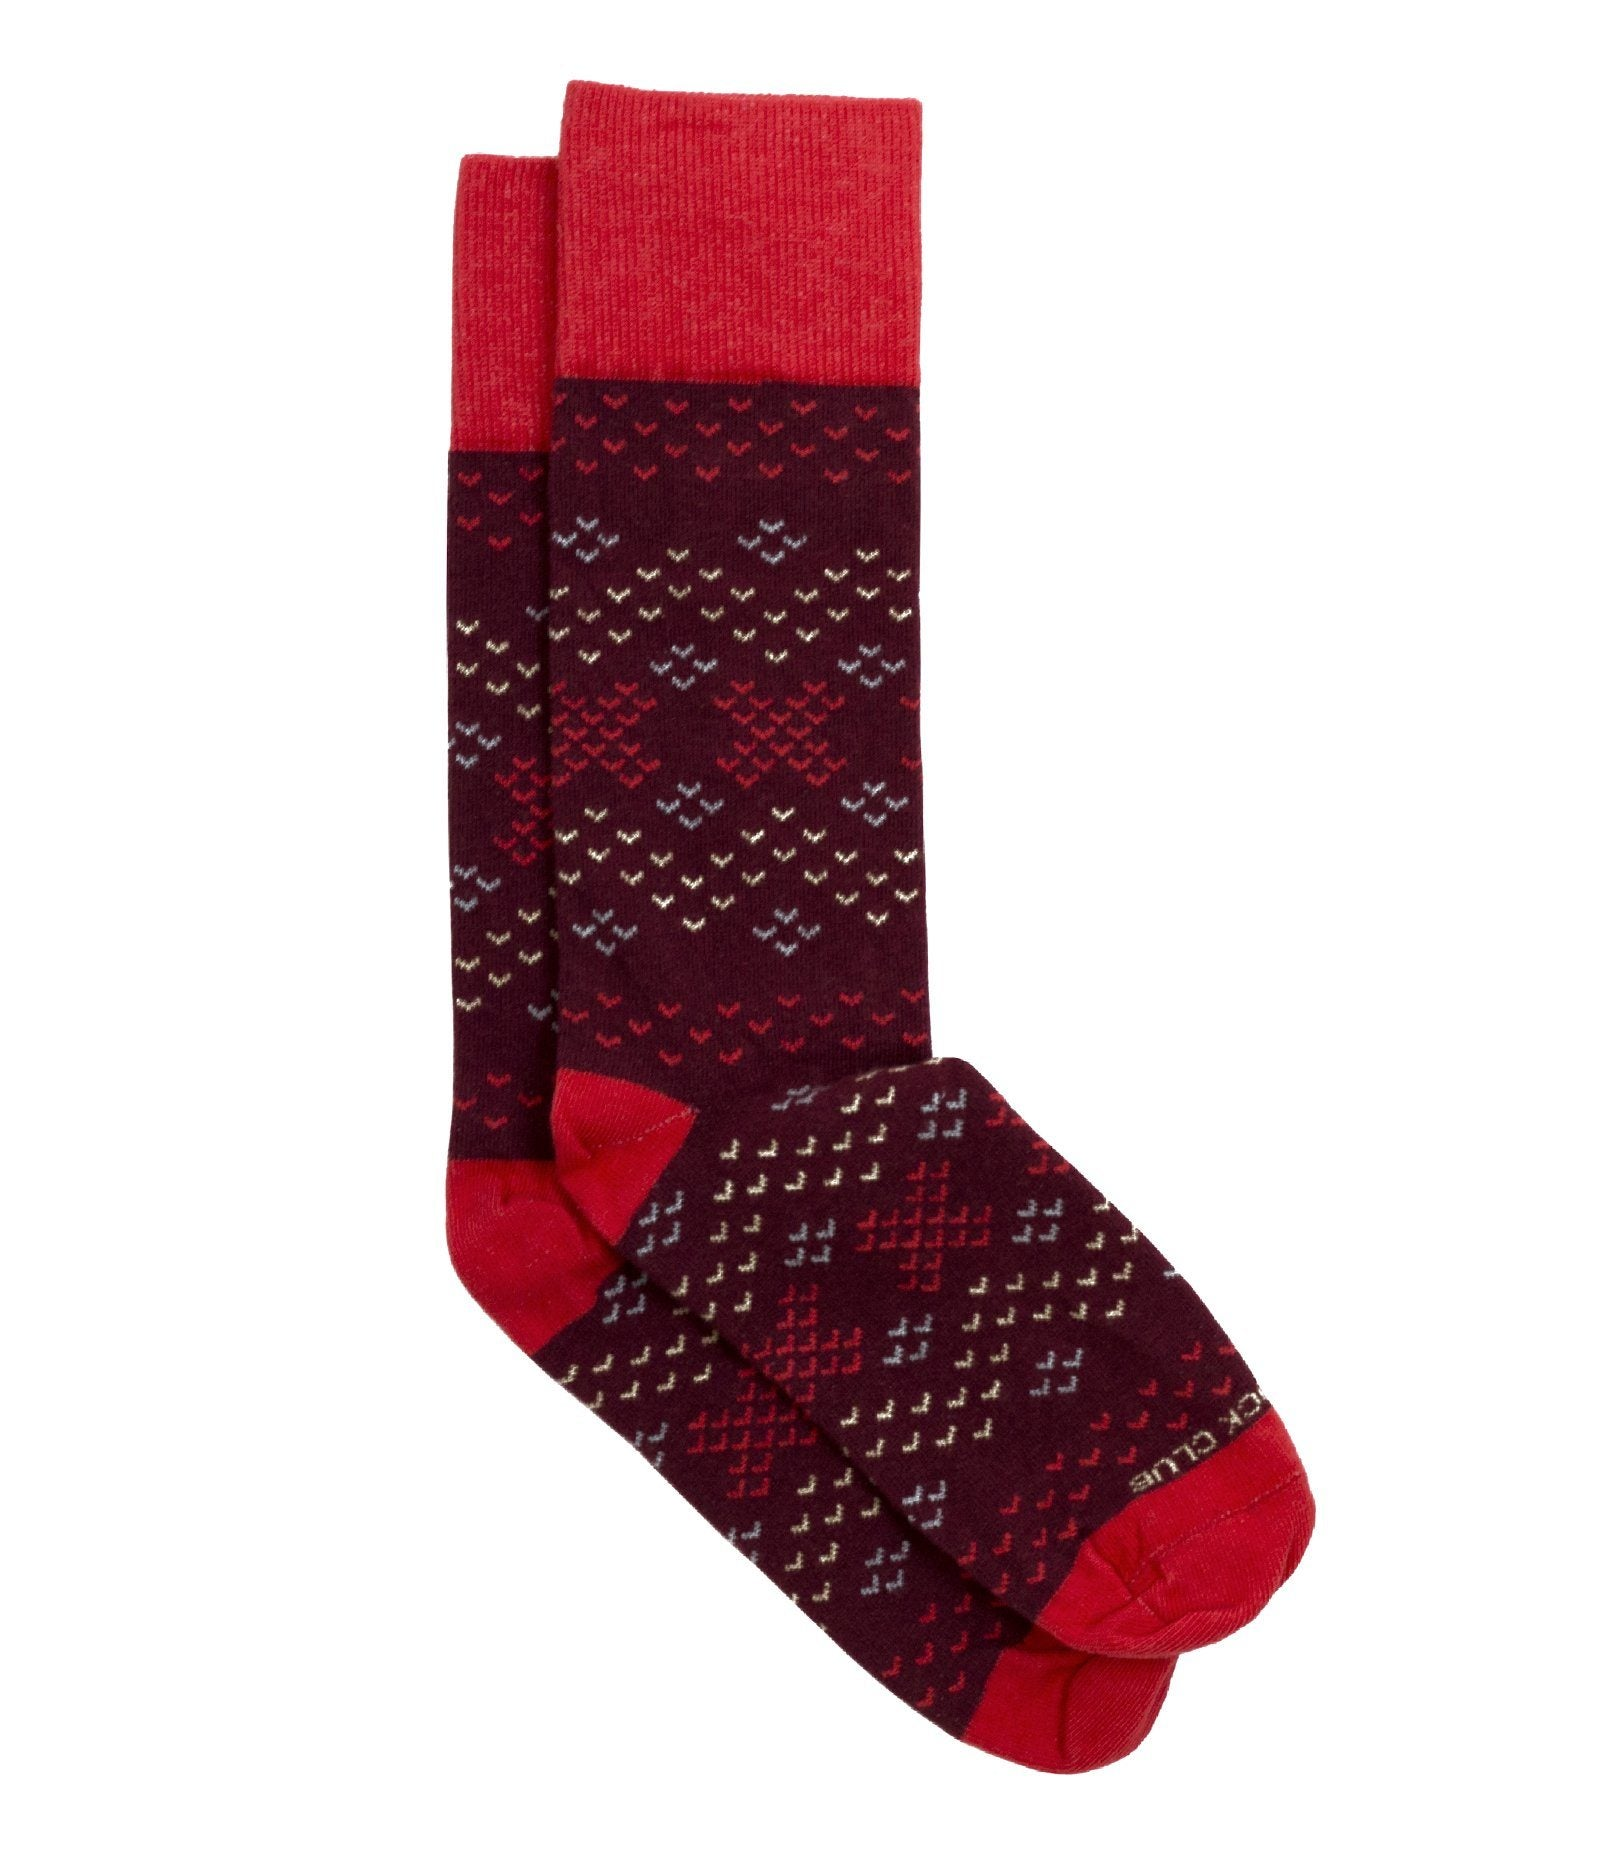 The Amelia - Maroon - Sock Club Store